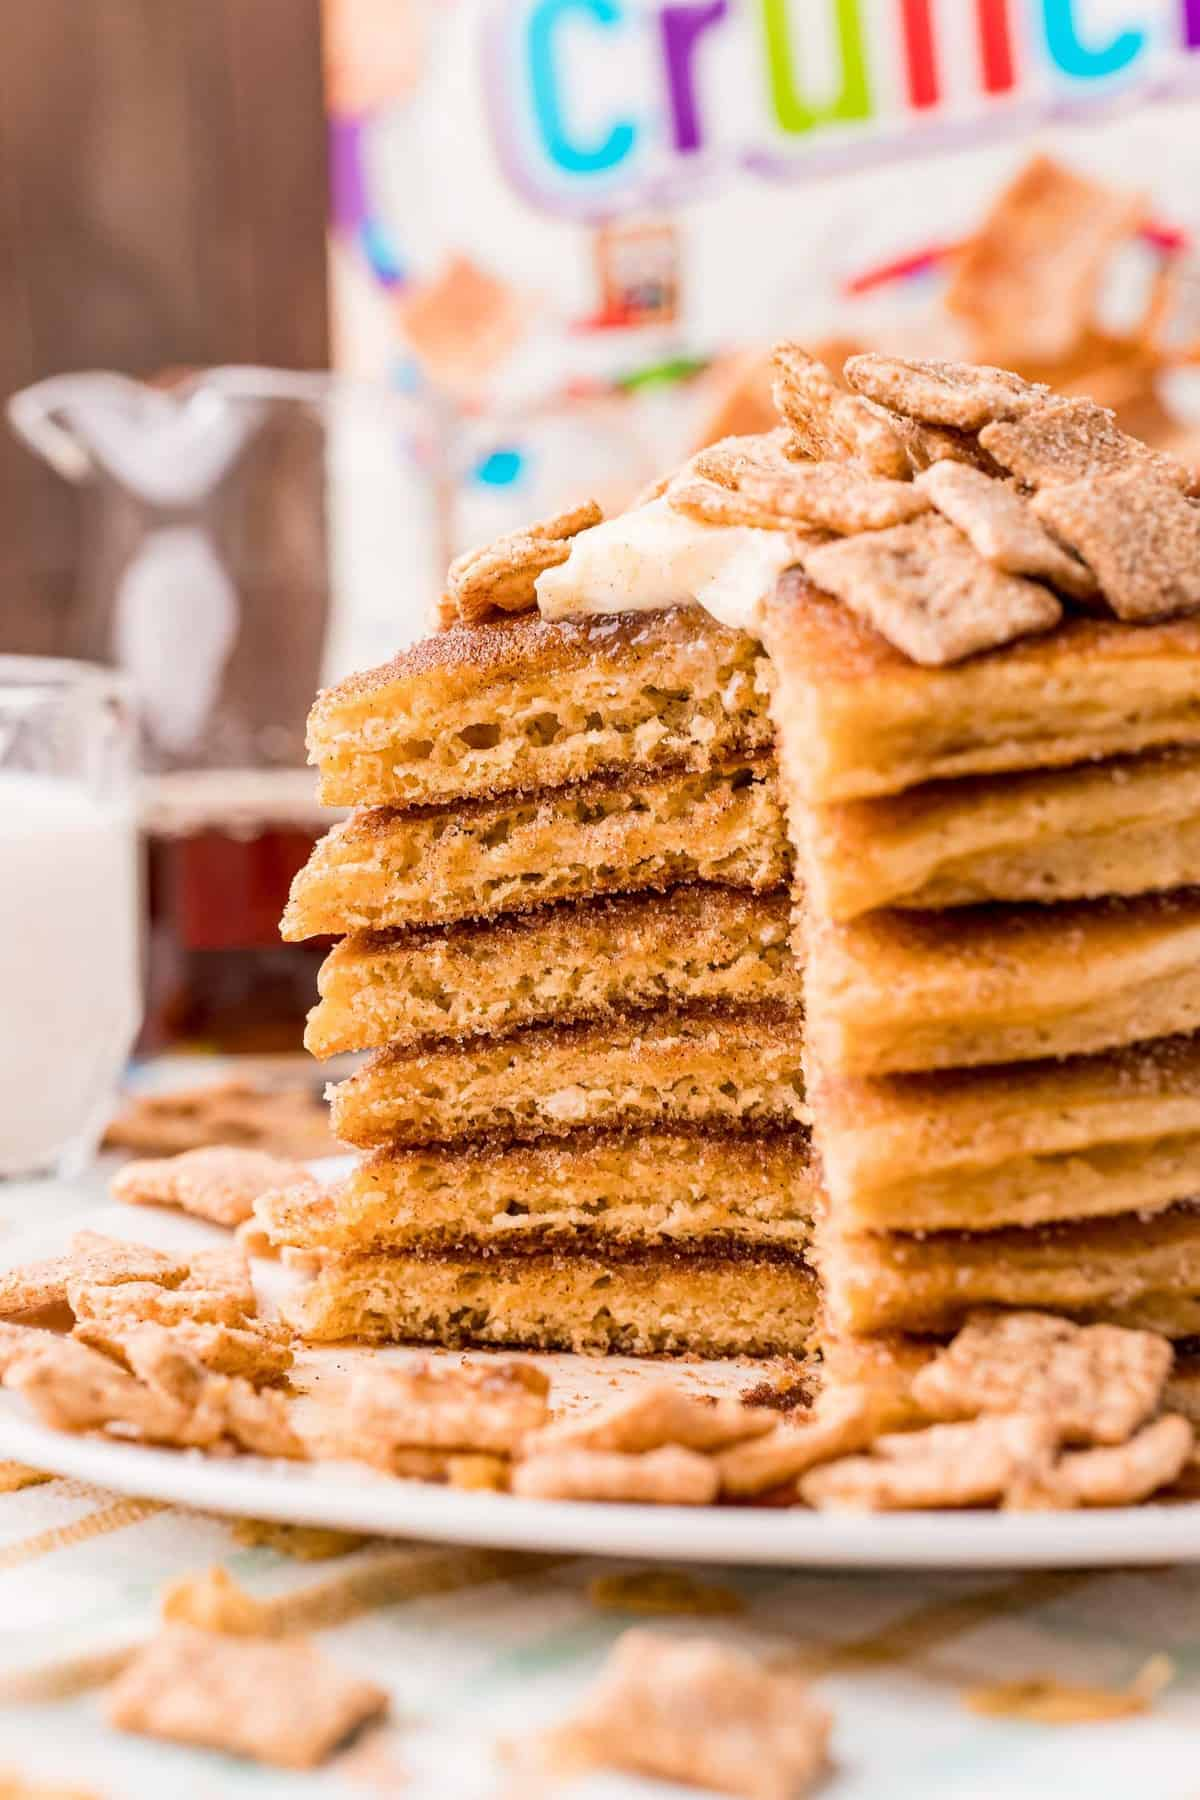 Stack of pancakes with a cut taken out to show texture.